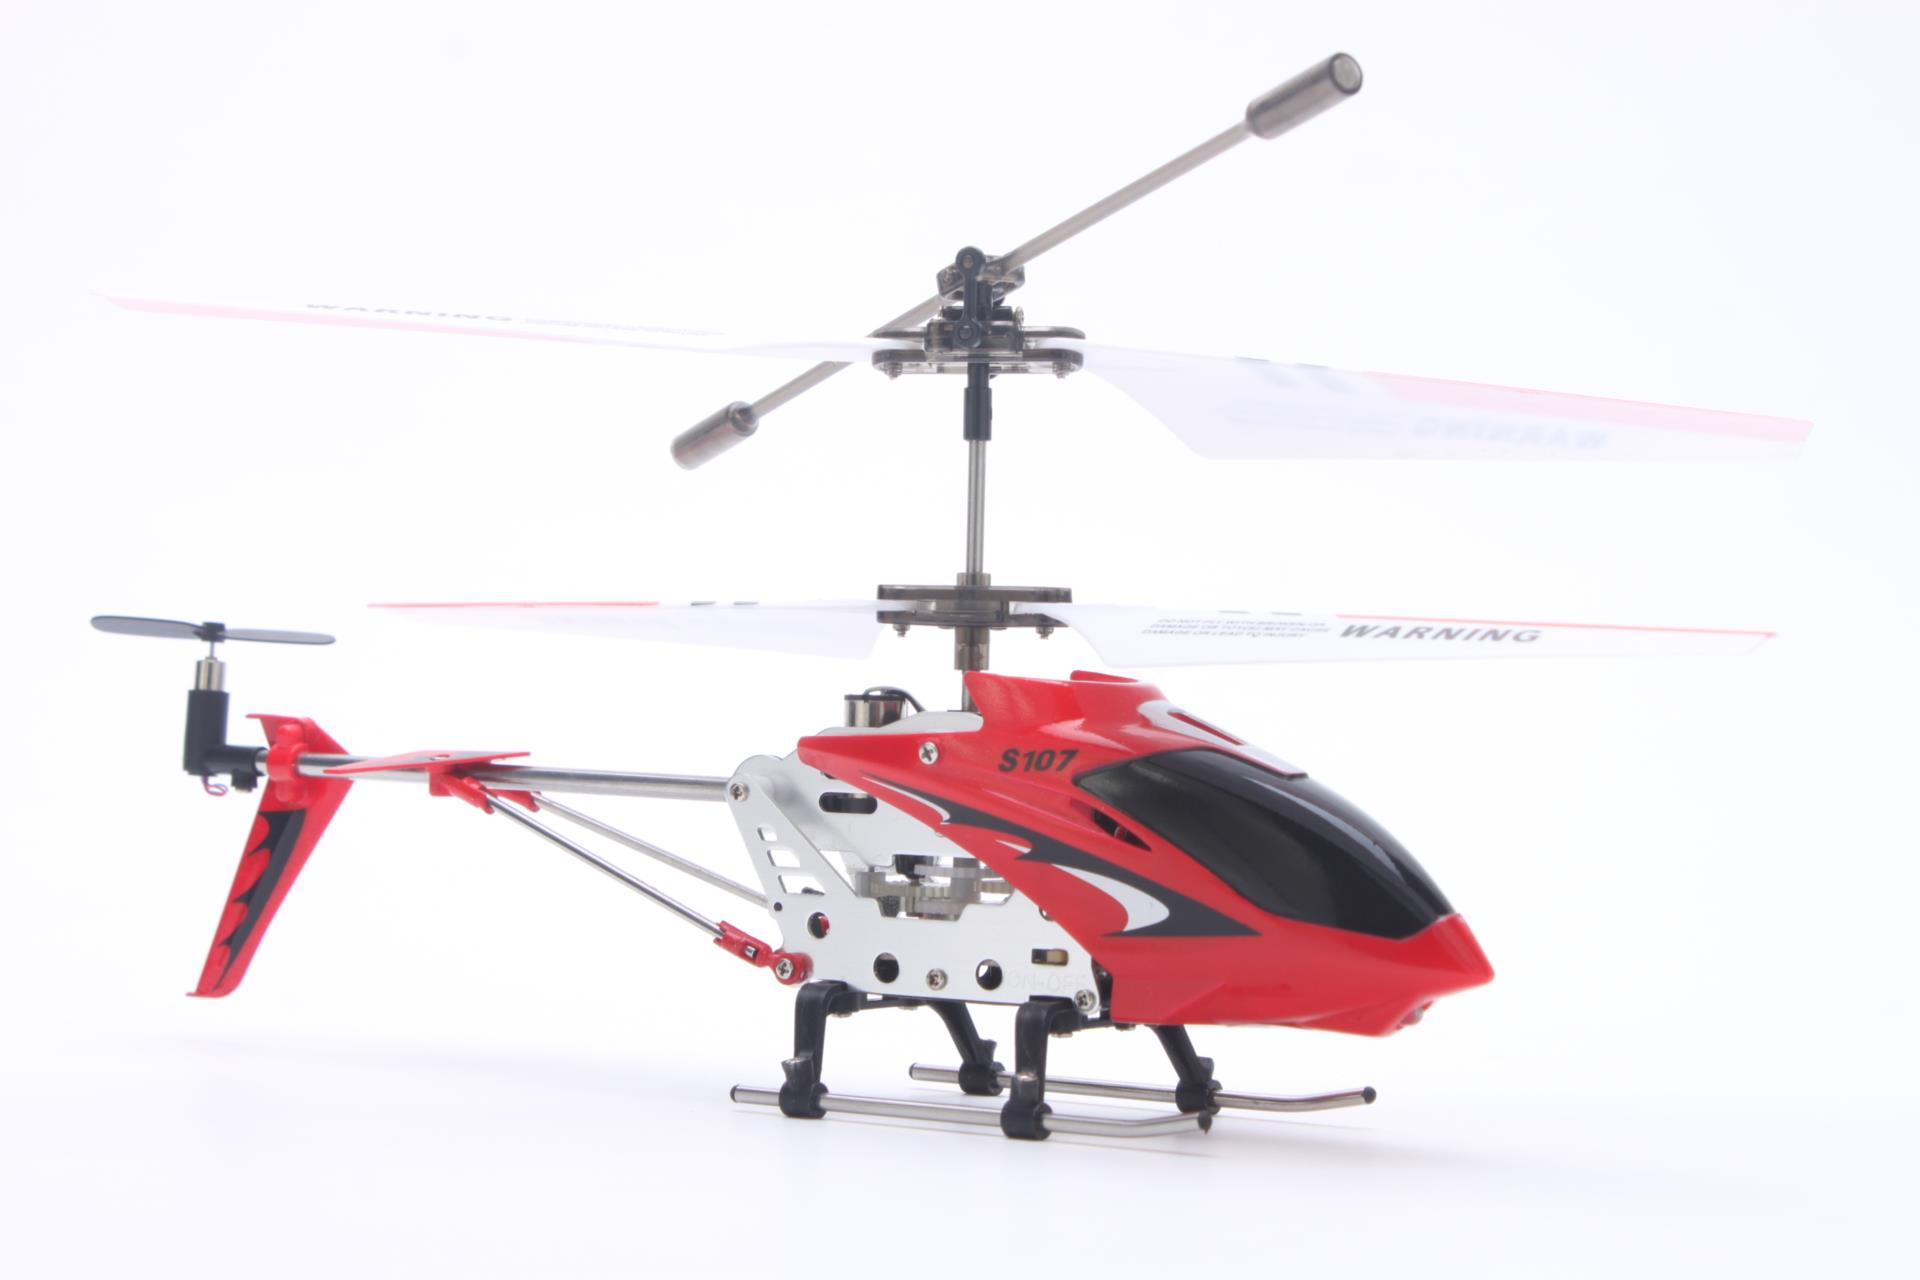 single blade helicopter rc with 32499582616 on Sh 6032 4 Channel 2 4ghz Single Blade Remote Control Rc Helicopter Rtf Black additionally Airplane Wiring Diagram besides Hawkspy Helicopter Camera Wiring Schematic additionally 1542 Wltoys V912 4ch Enkel Blad Rc Helikopter Kap Reserve Onderdelen V912 23 furthermore New Packing Wltoys V911 1 2 4GHz 4 Channel Single Blade RC Helicopter Toy Green Black p236615.